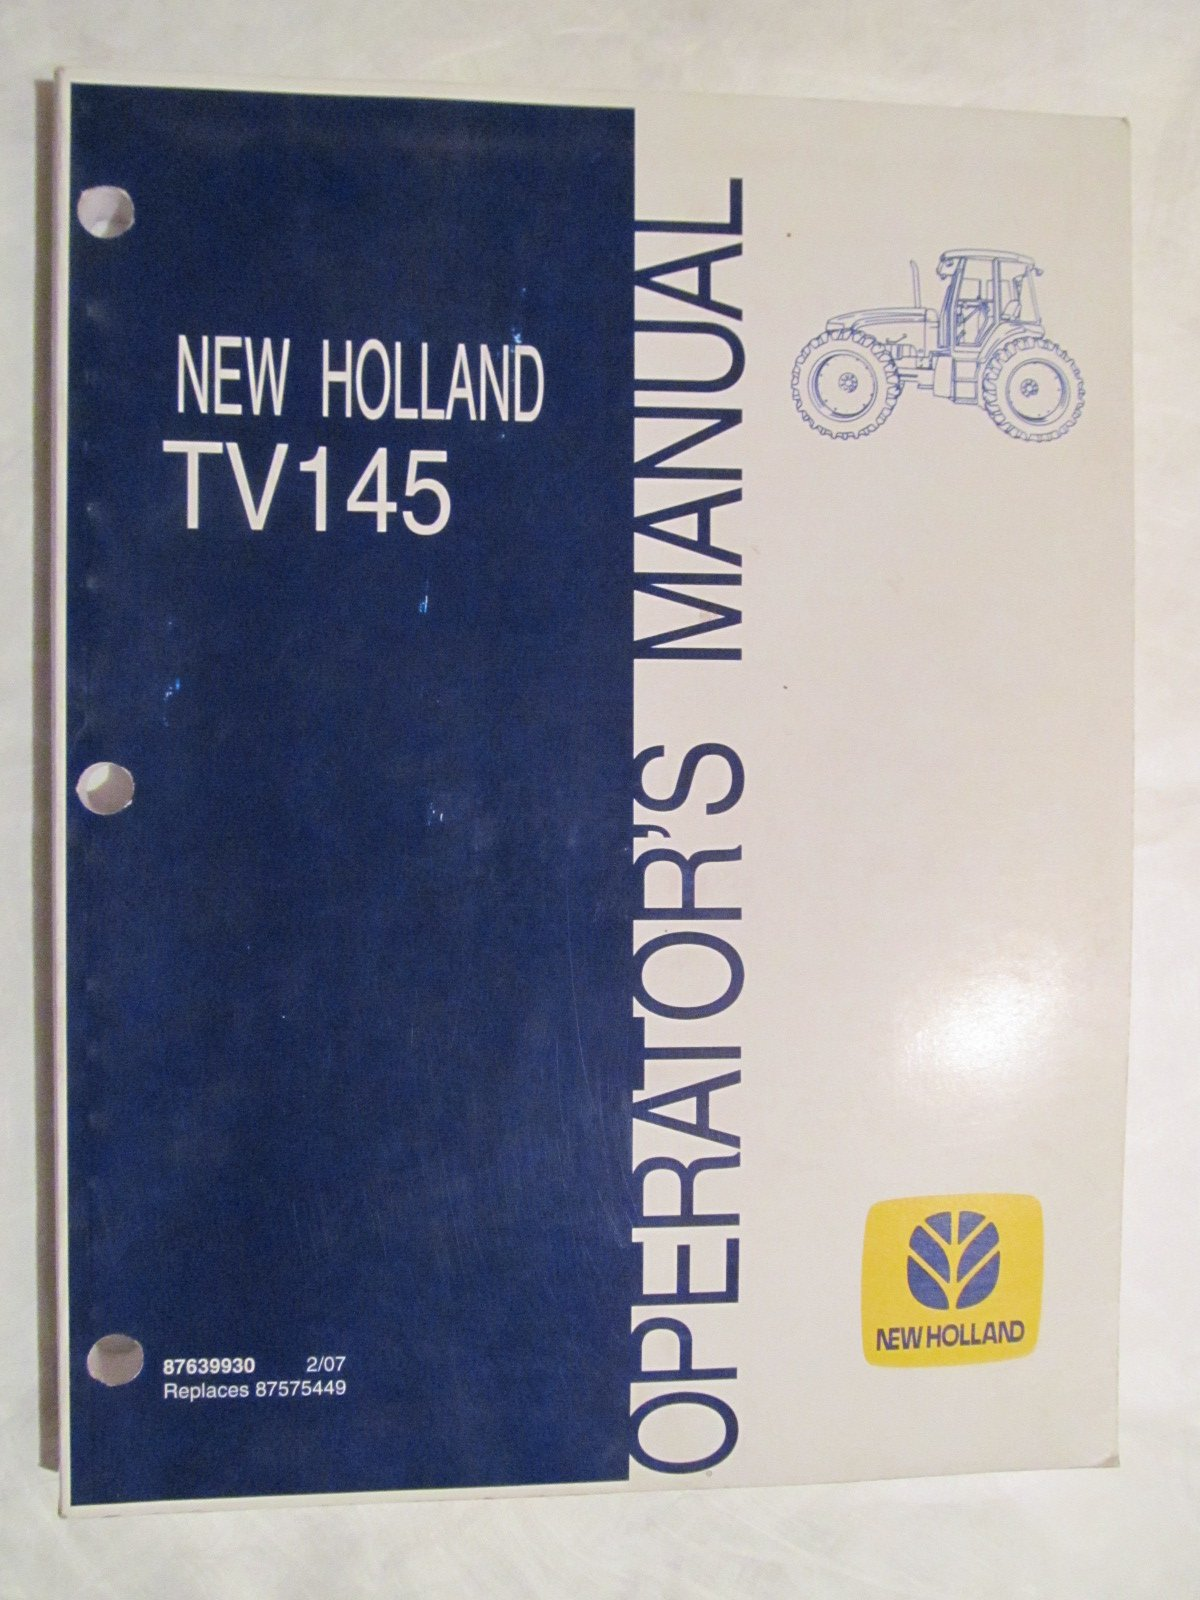 New Holland TV145 Tractor Operators Manual: New Holland: Amazon.com: Books